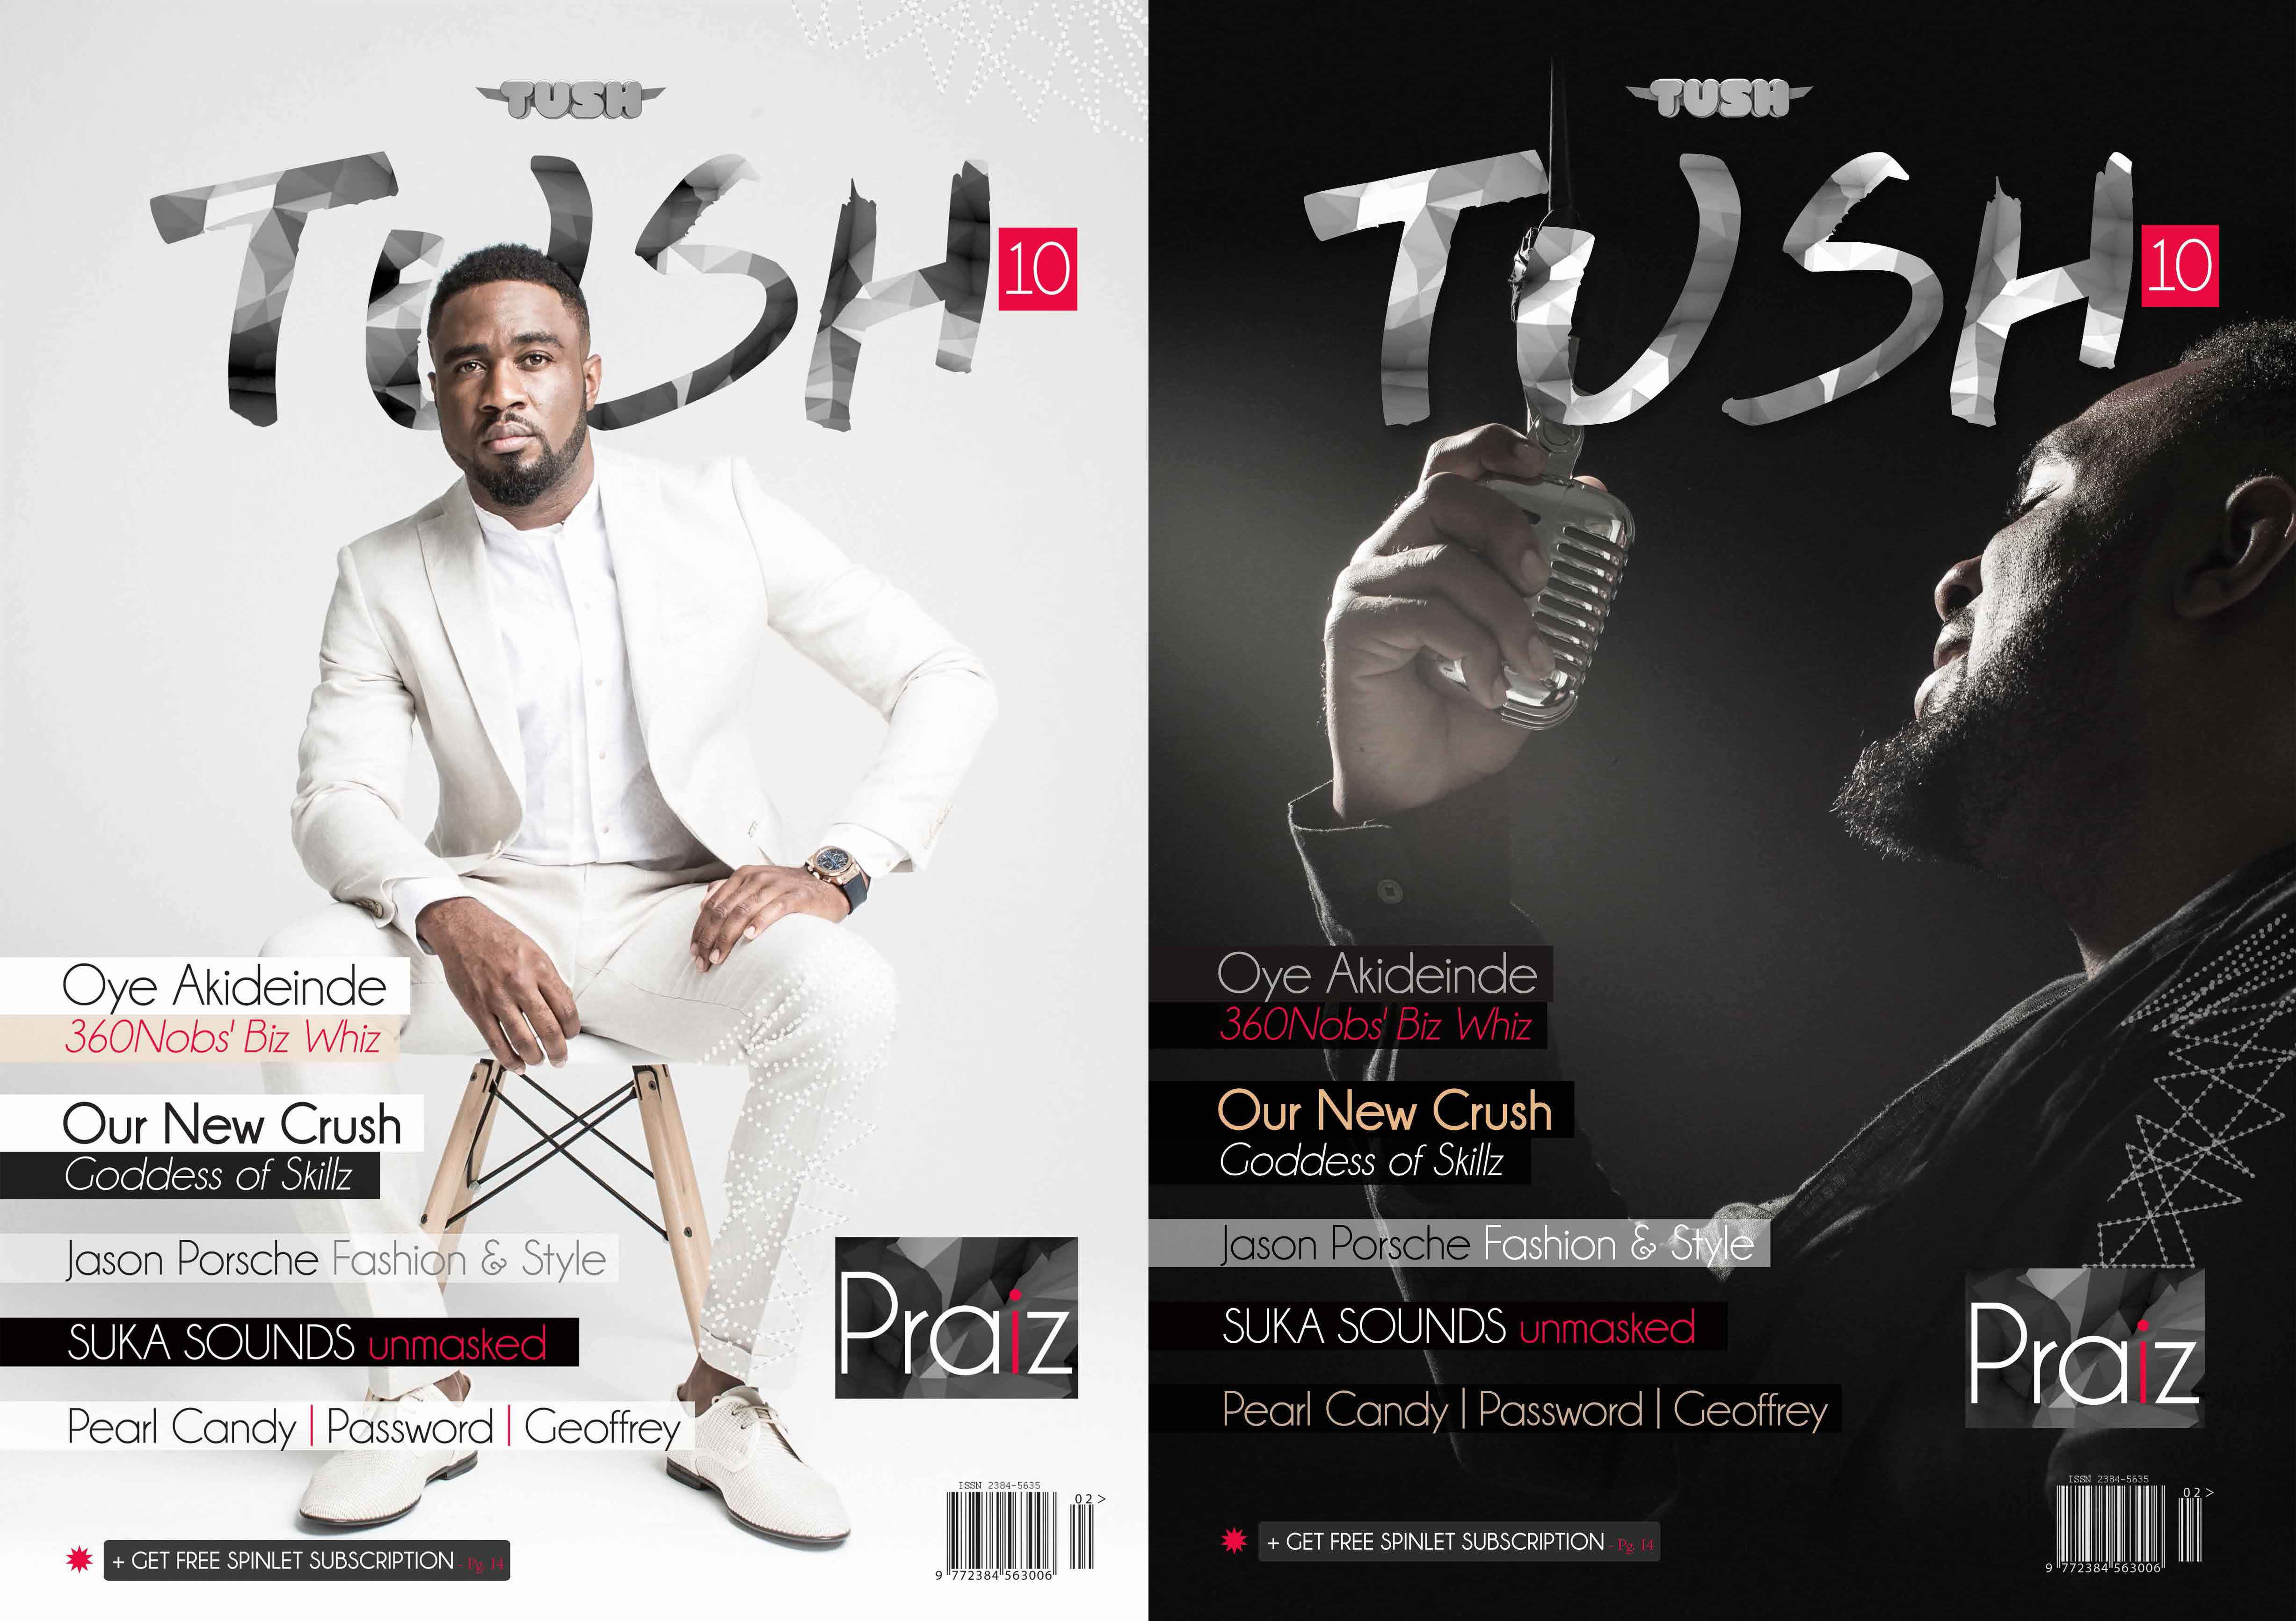 Rich & Famous: Tush Magazine Celebrates Its 10th Issue Featuring Praiz on Its Double Cover.